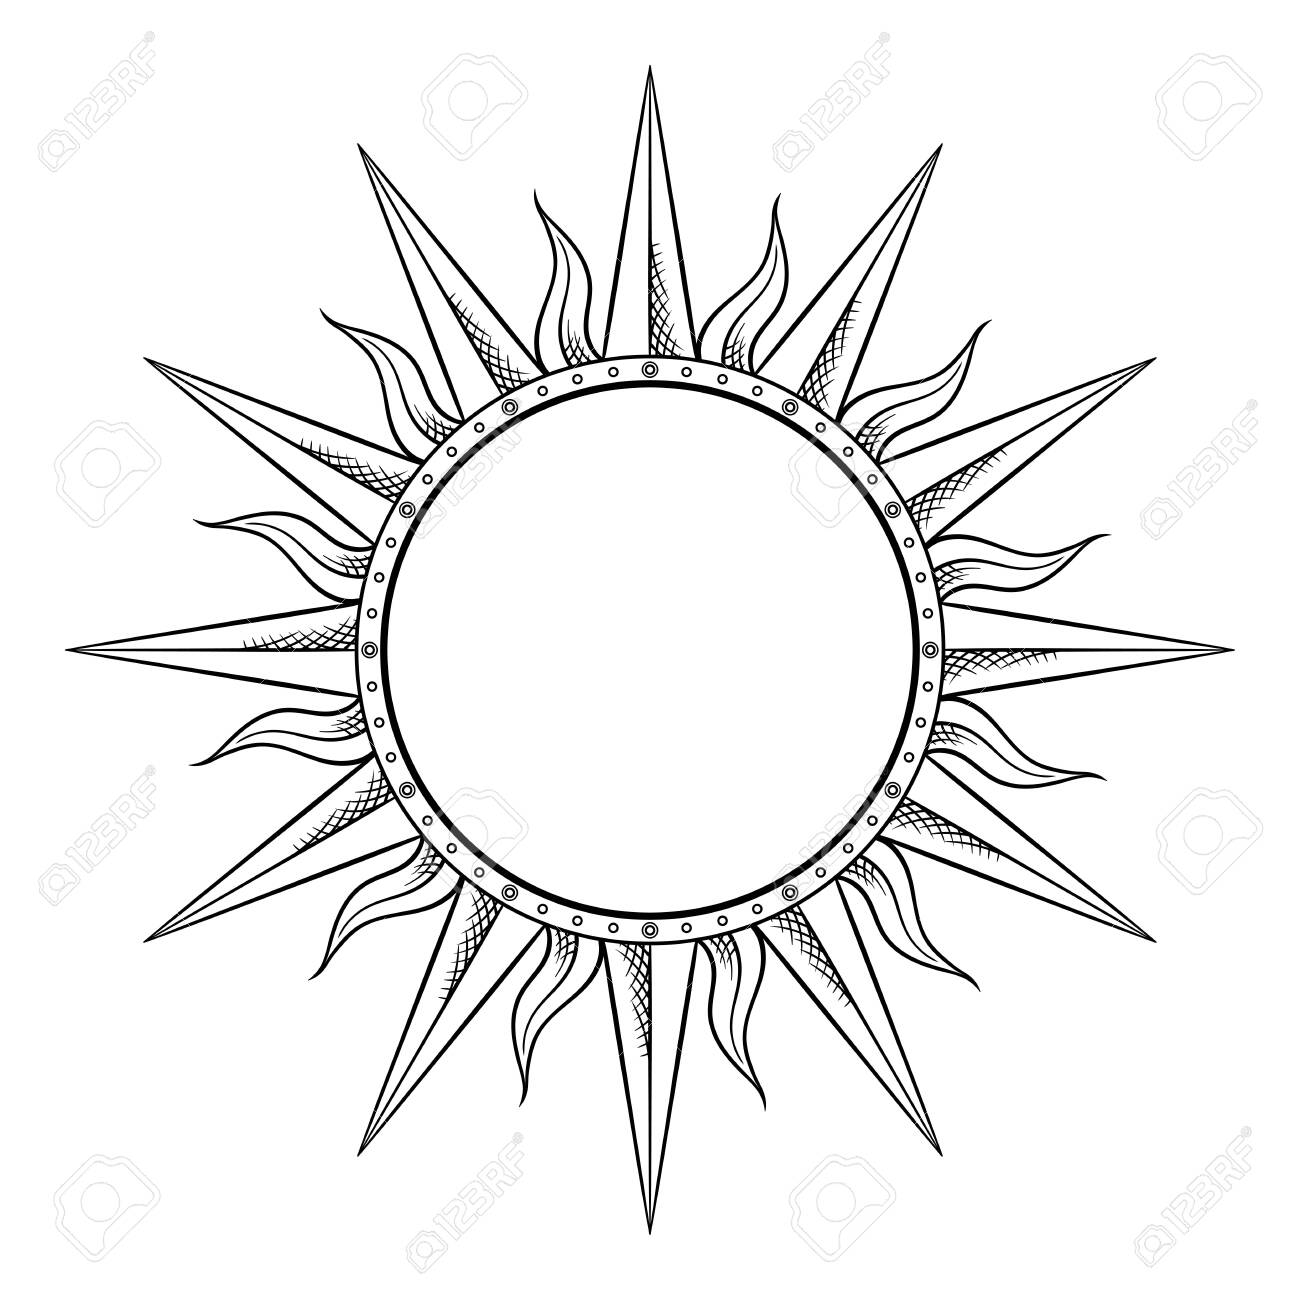 Hand drawn etching style frame in a shape of sun rays vector illustration. - 135608609